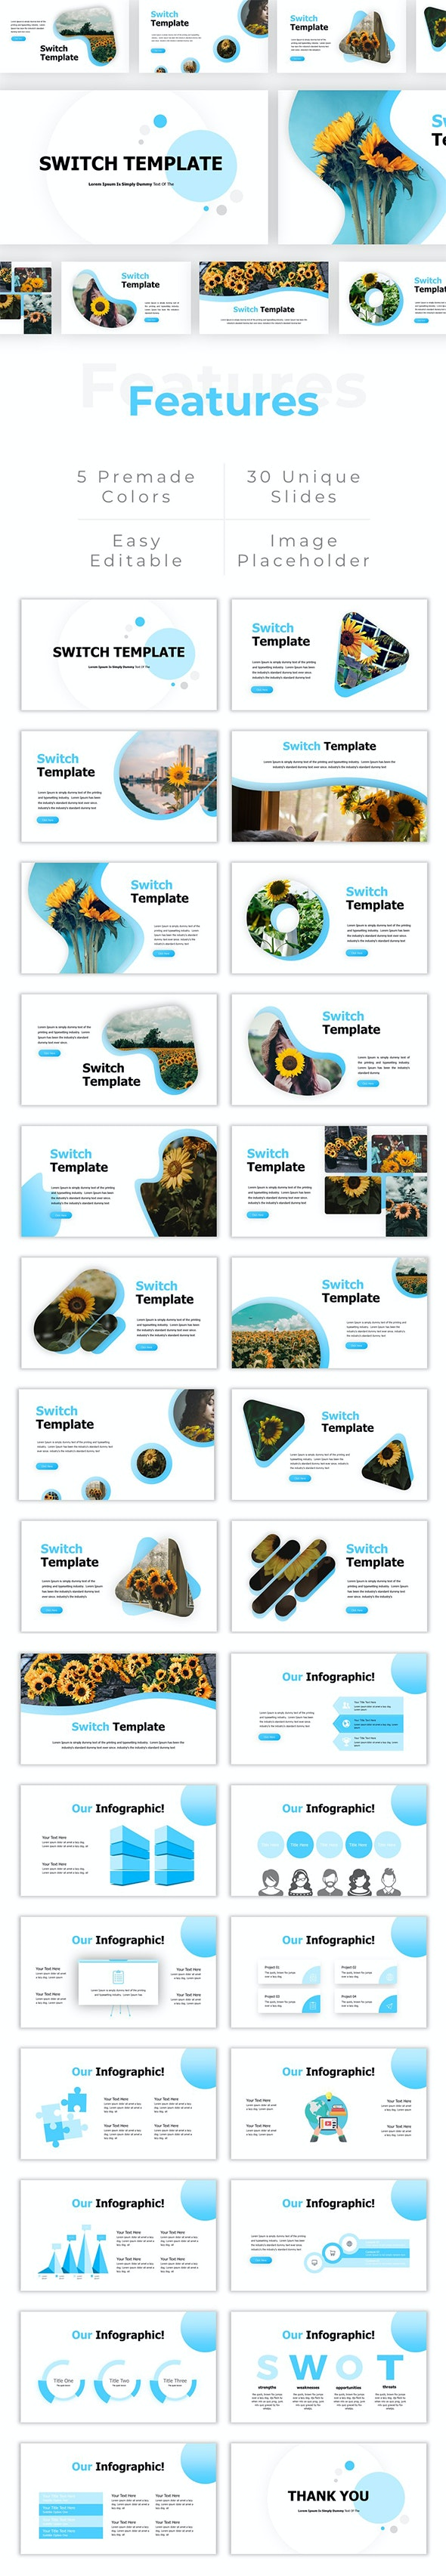 Switch - Google Slides Templates - Google Slides Presentation Templates